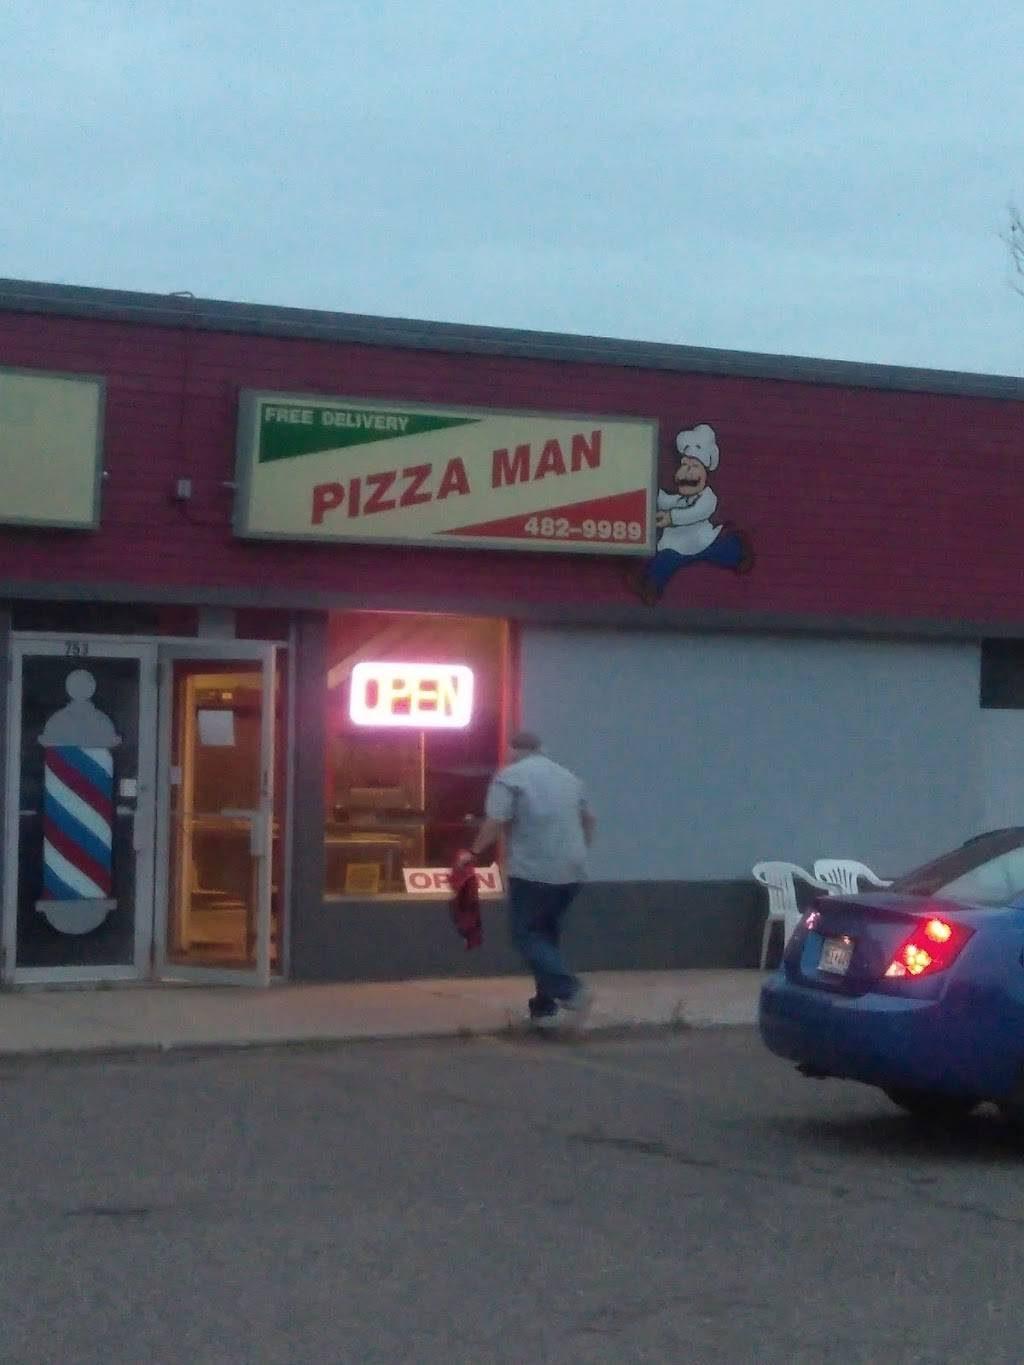 PIZZA MAN VADNAIS HEIGHTS LITTLE CANADA - meal delivery  | Photo 10 of 10 | Address: 753 County Rd D E, St Paul, MN 55117, USA | Phone: (651) 482-9989